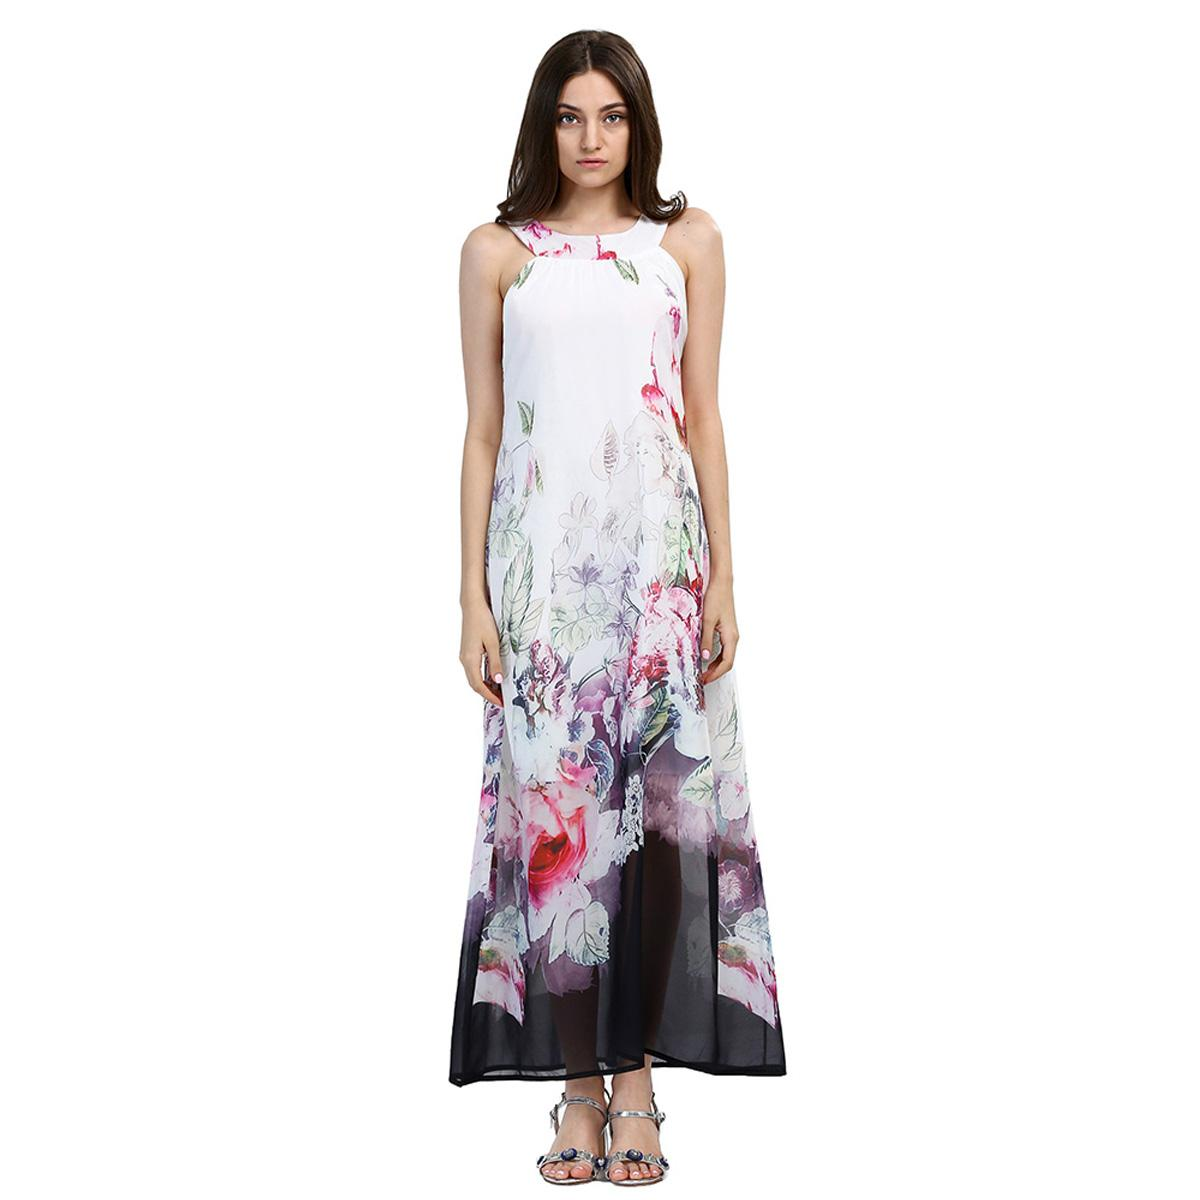 2019 Beach Boho Maxi Dresses Print Floral Plus Size Bar Party White Long  Dress Sleeveless Summer Sundress Vestidos Beachwear Tunics Robe New